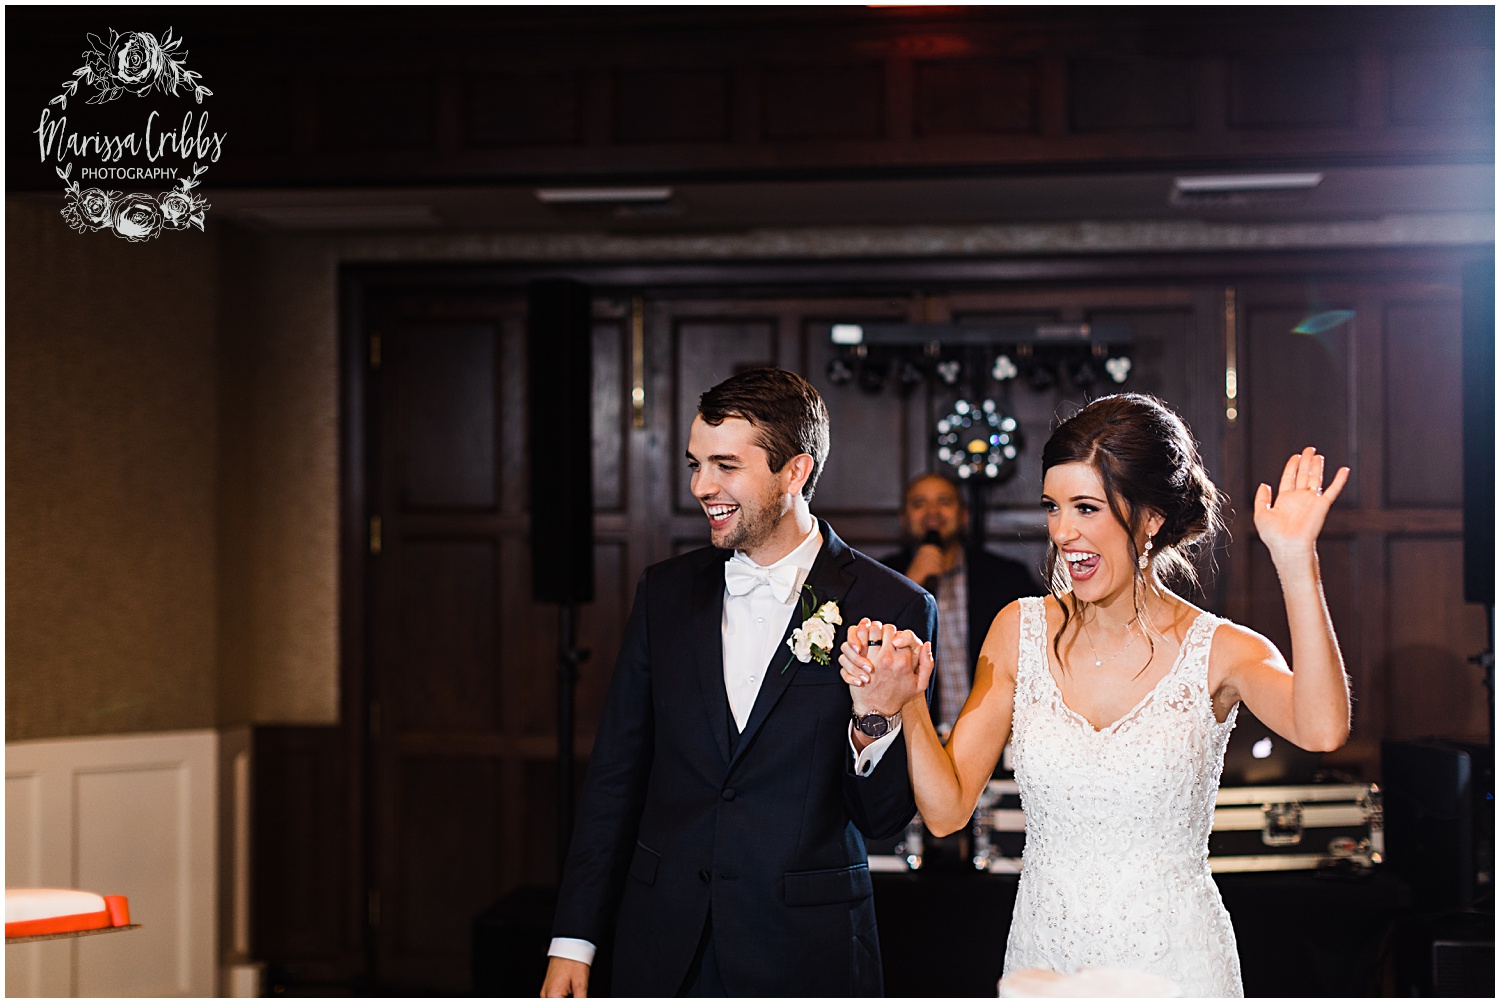 MEGAN & DEREK WEDDING BLOG | MARISSA CRIBBS PHOTOGRAPHY_8208.jpg